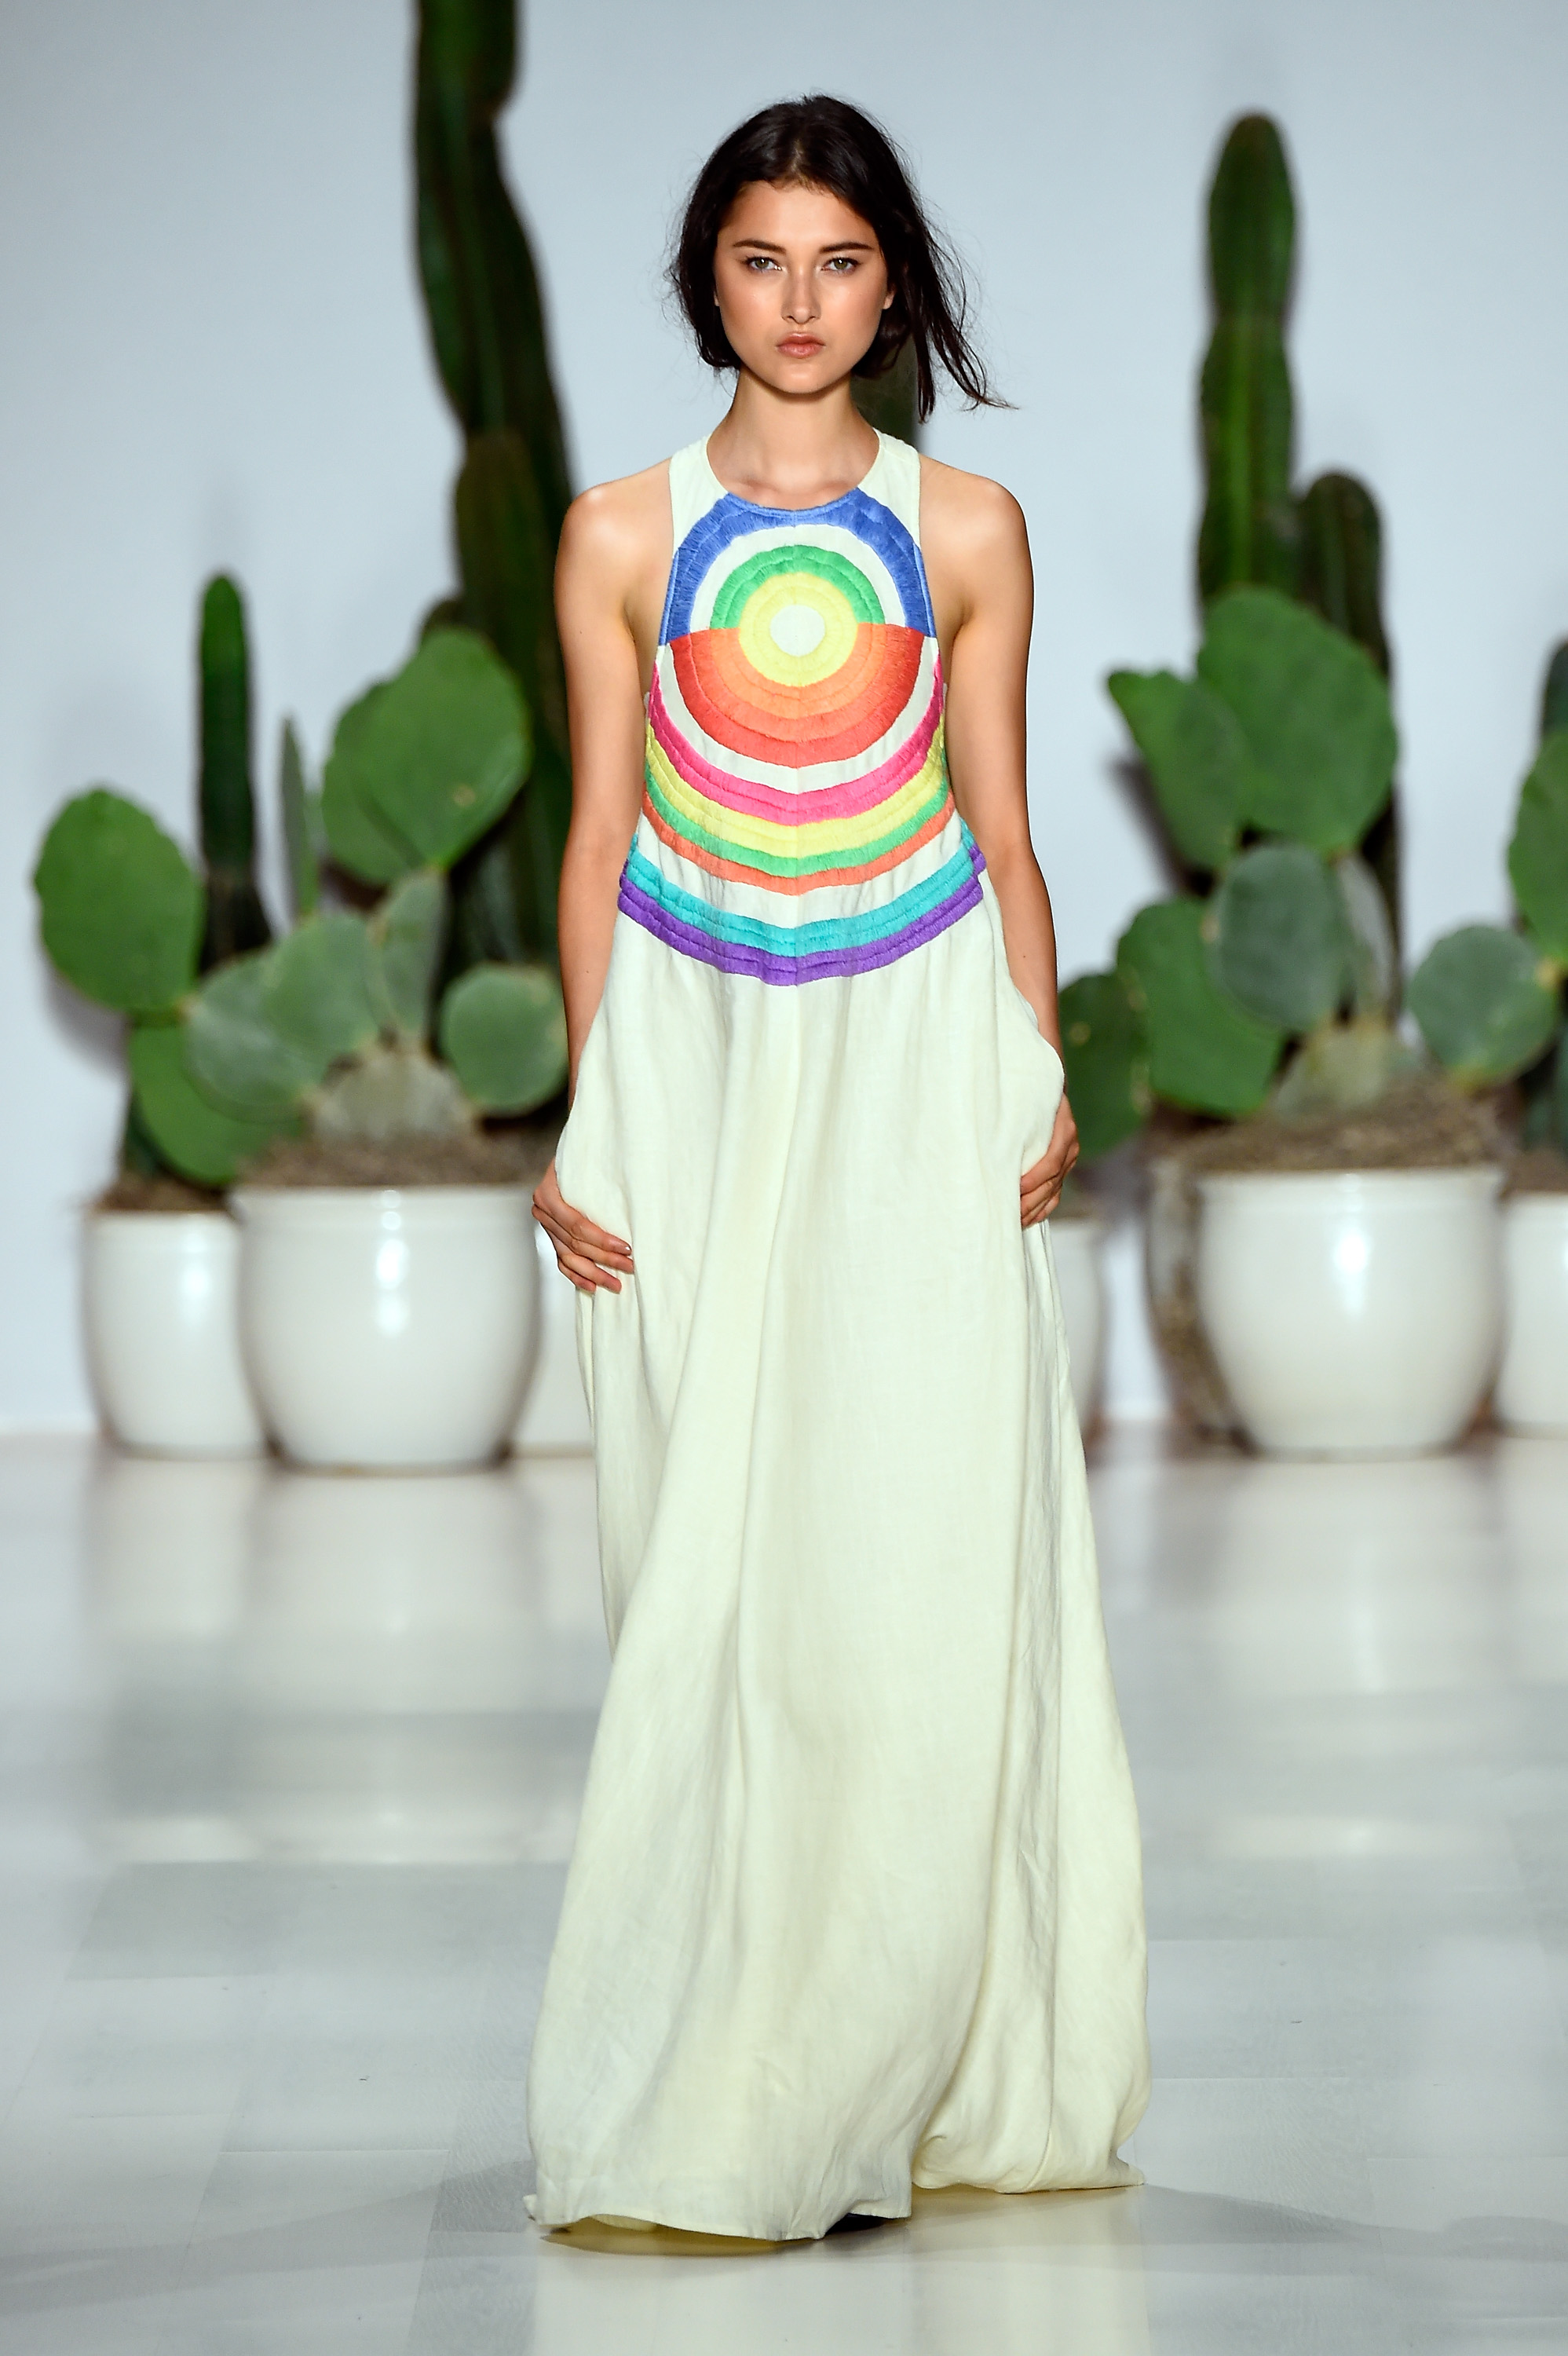 Mercedes-Benz Fashion Week Spring 2015 - Official Coverage - Best Of Runway Day 3